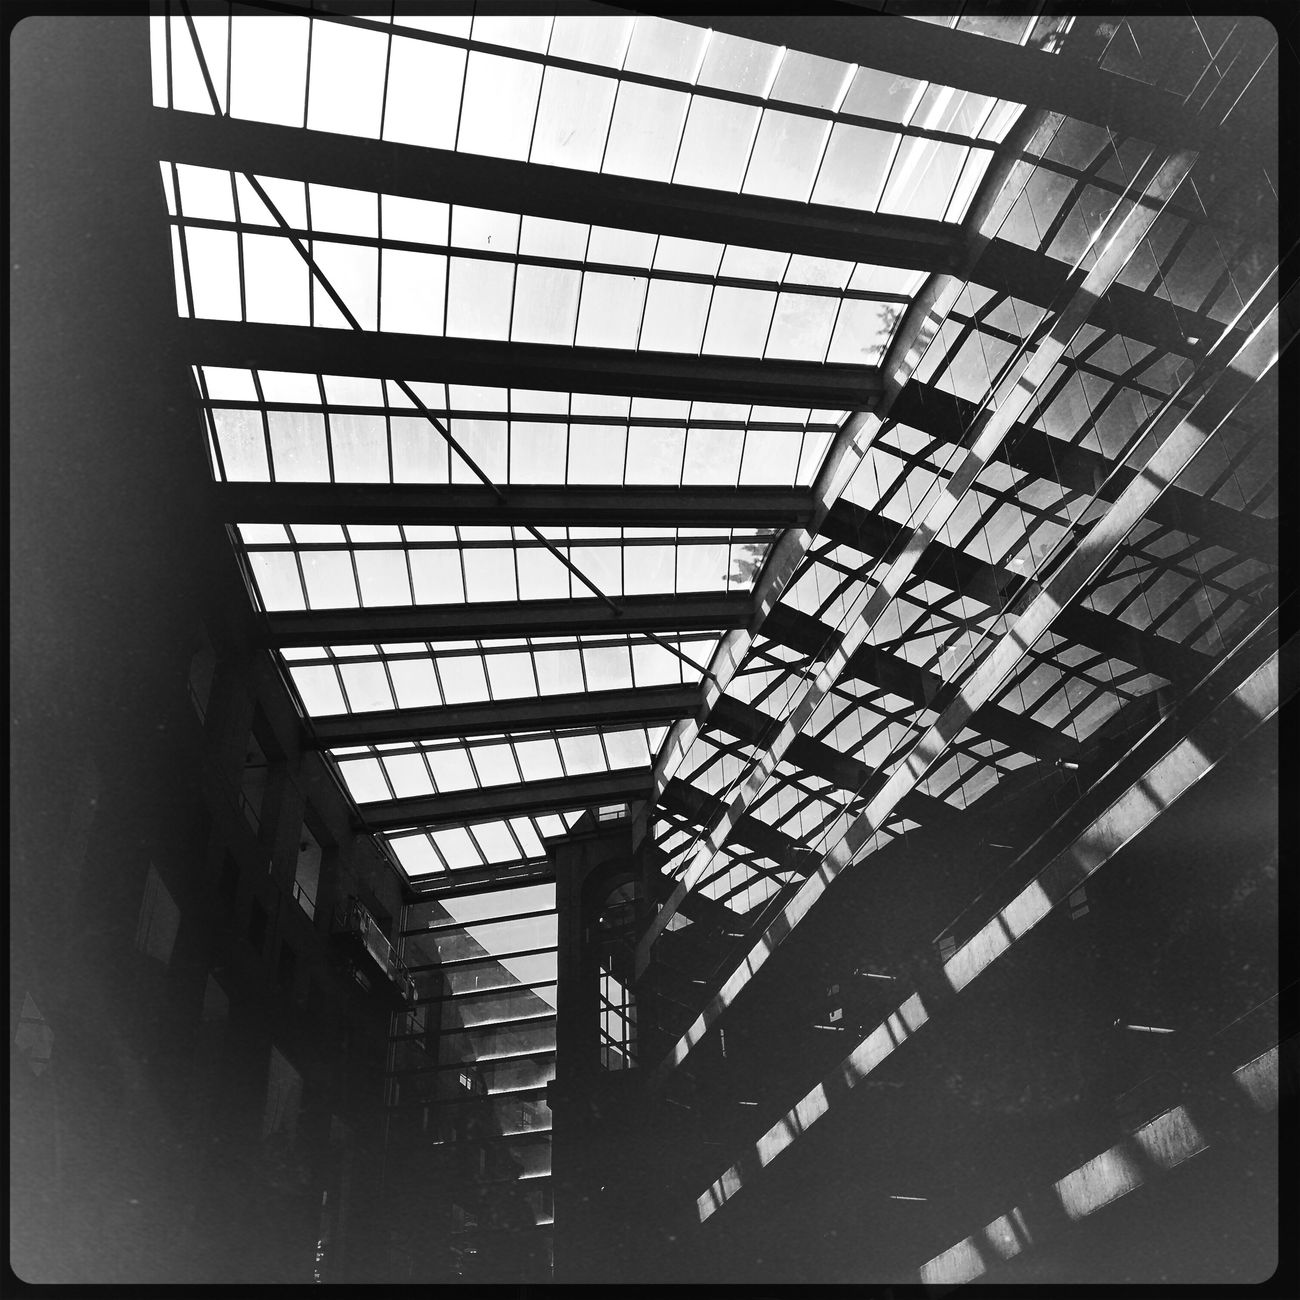 Mobilephotography Reflection Blackandwhite Architecture IPhoneography Hipstamatic